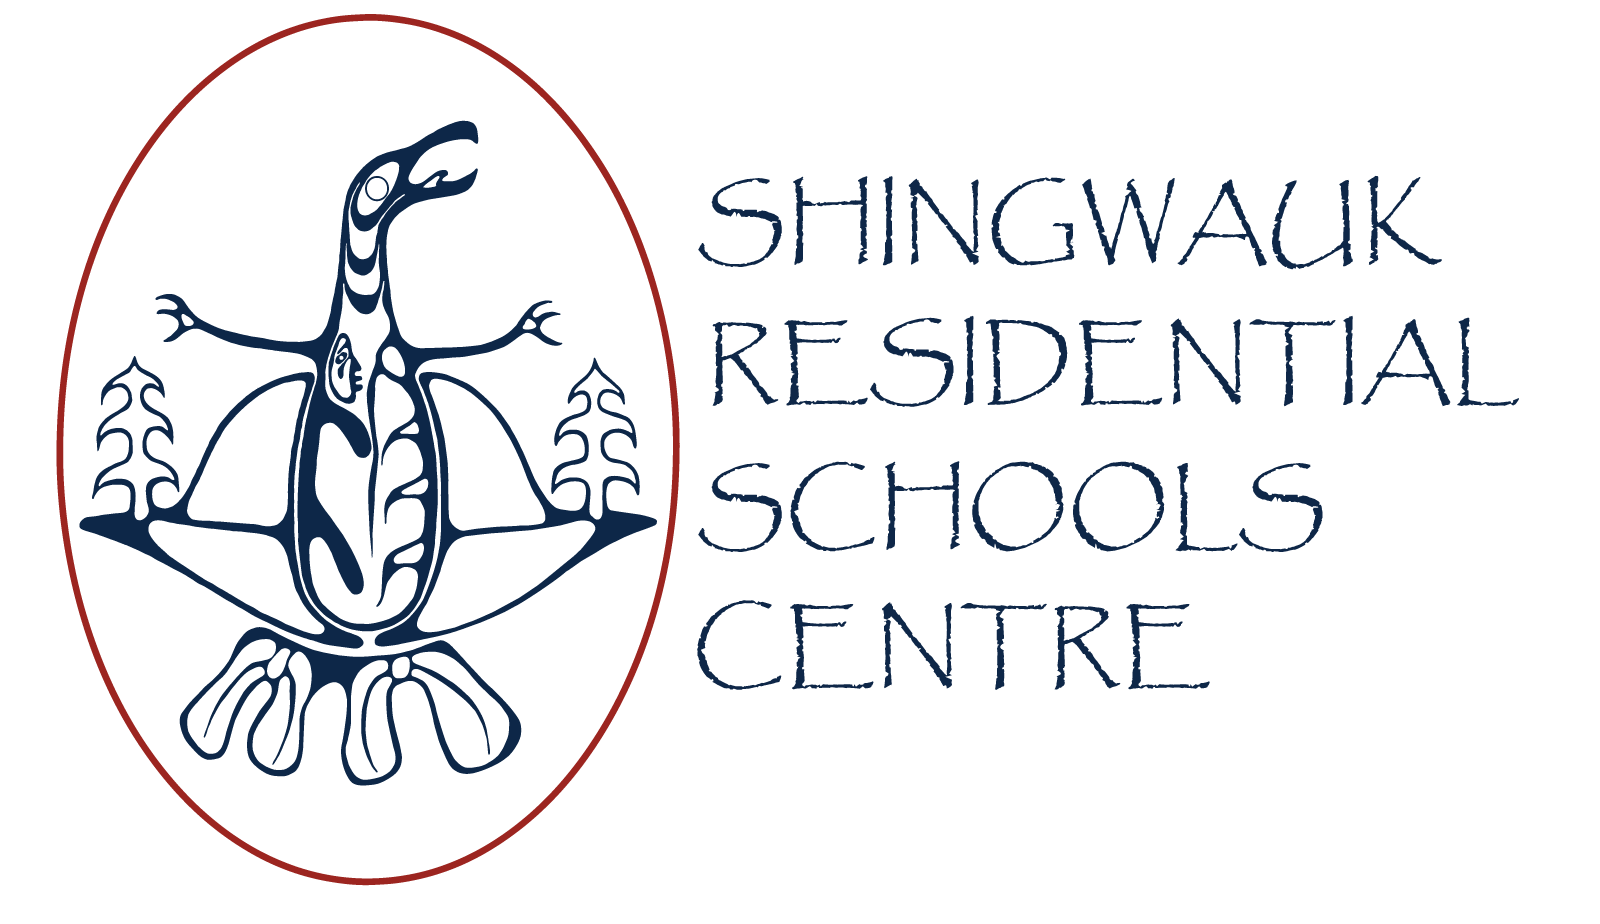 The logo of the Shingwauk Residential Schools Centre